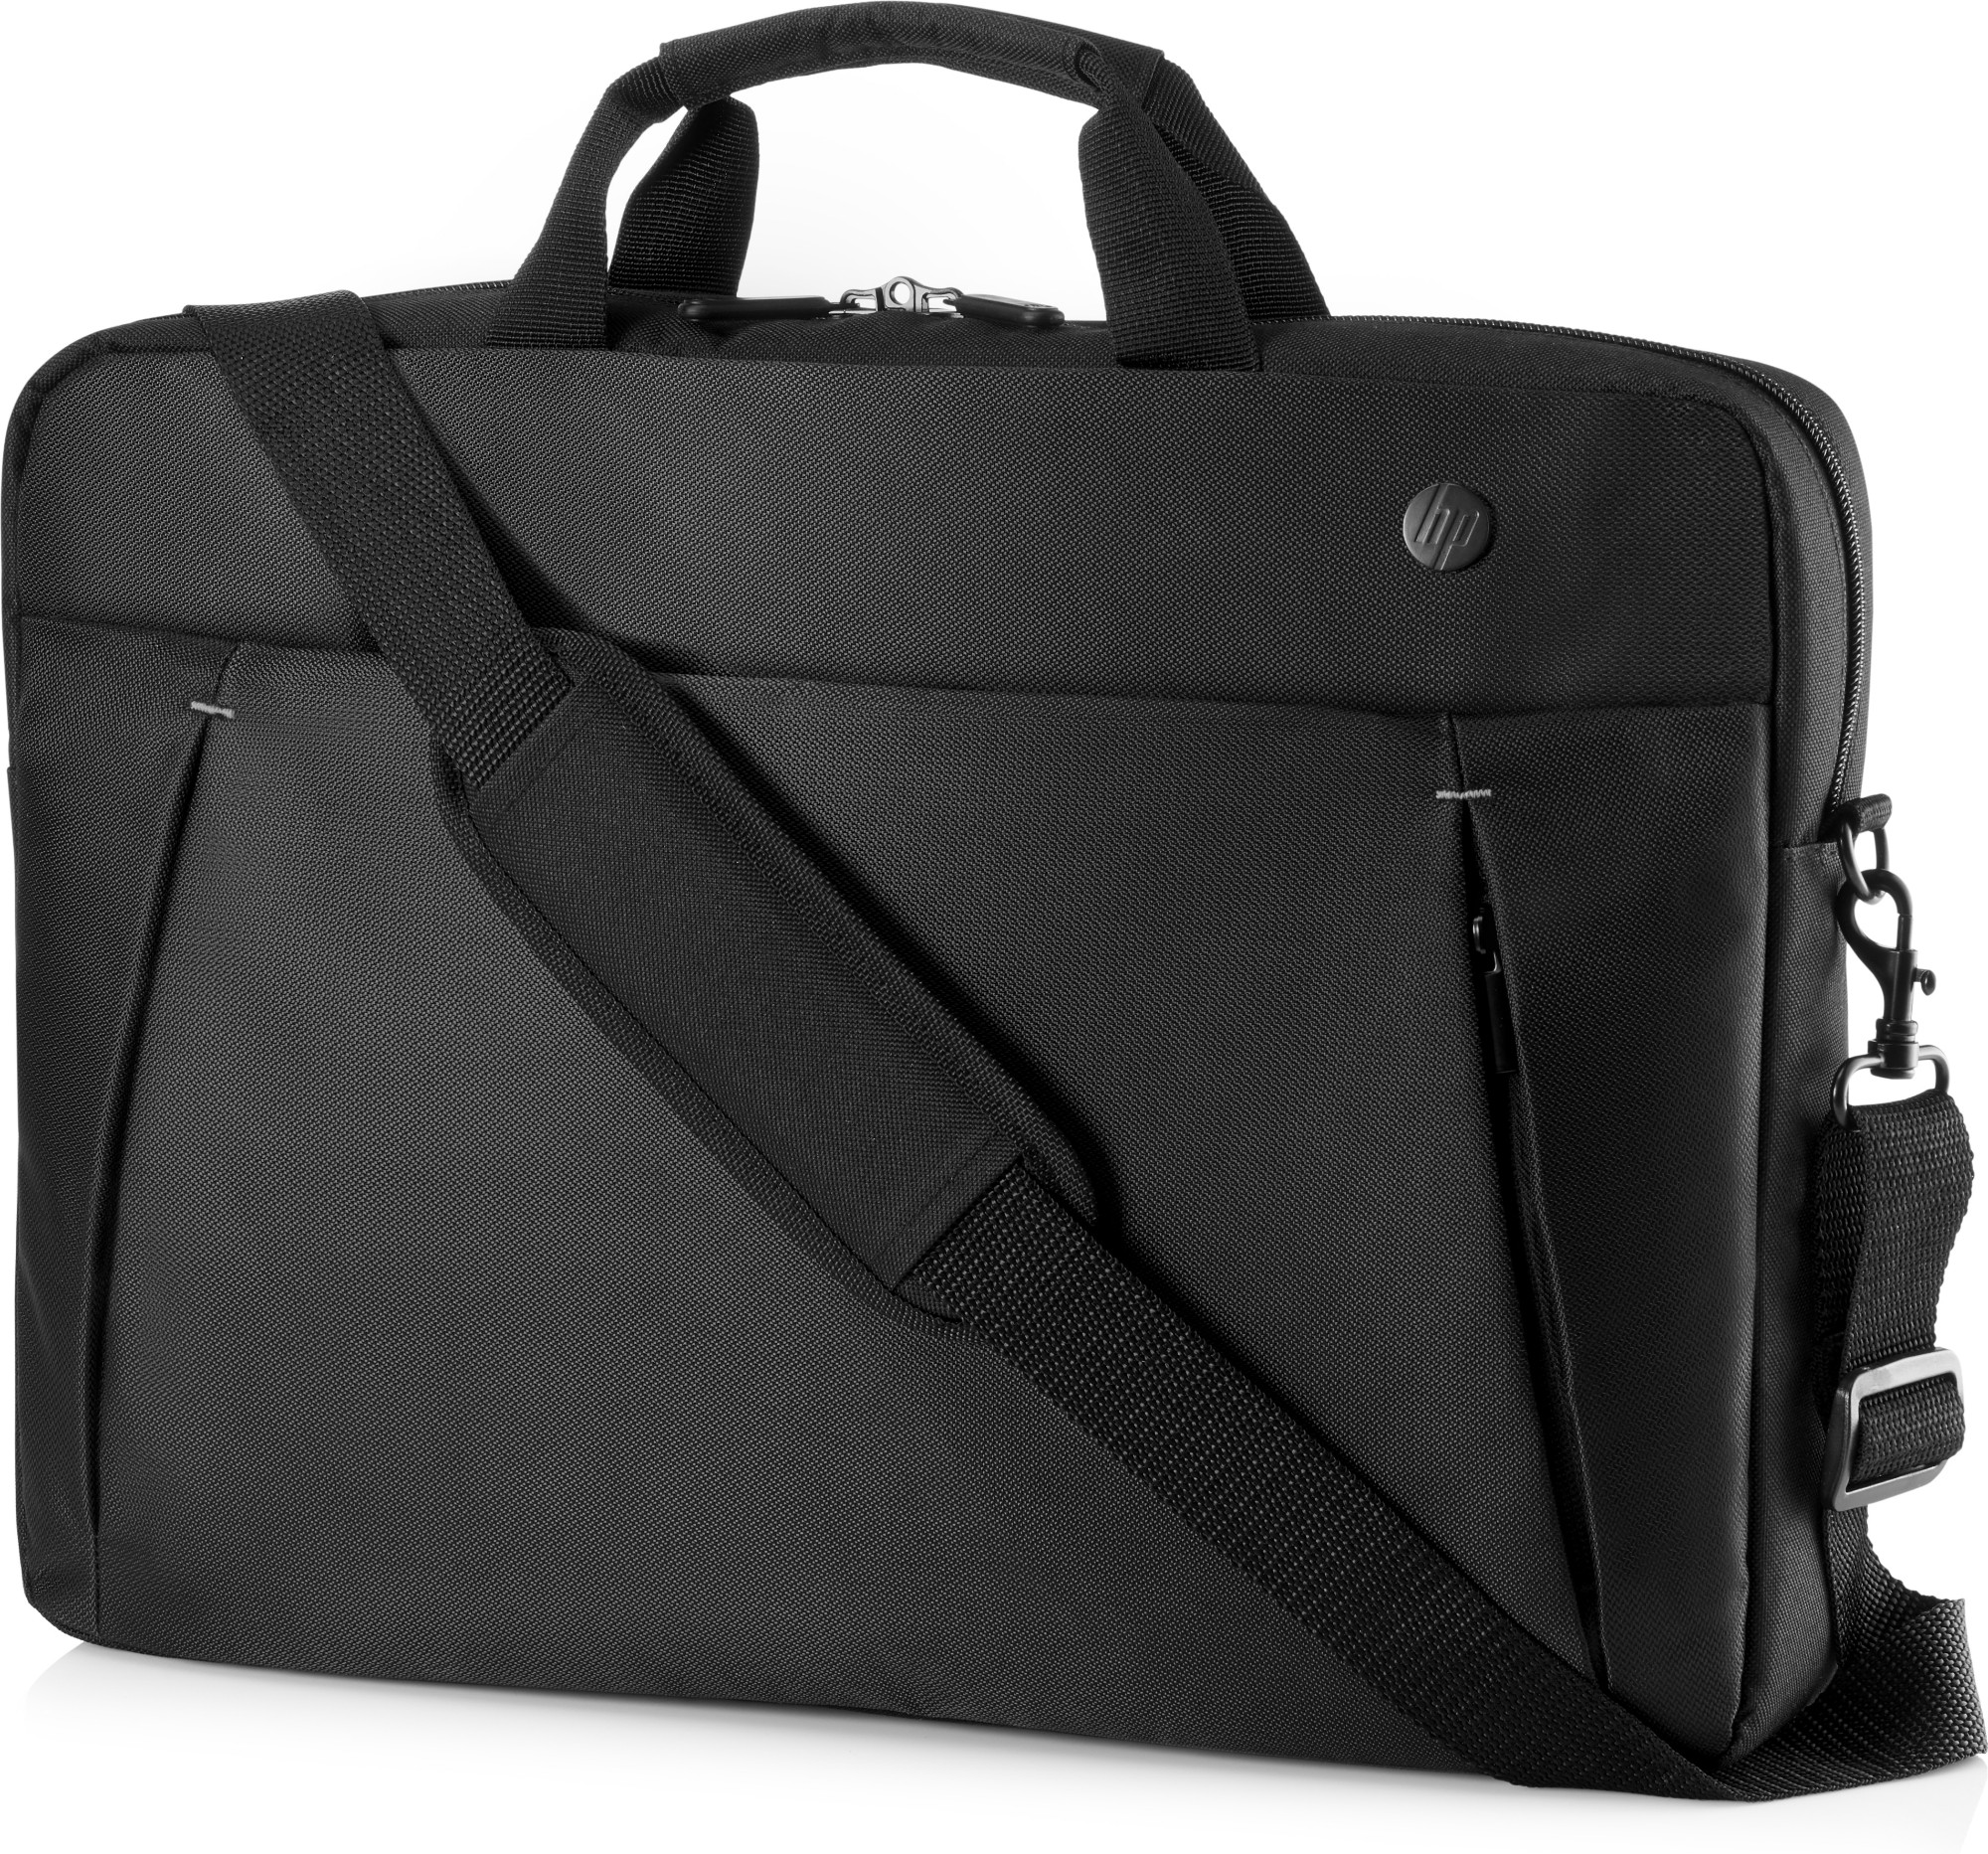 HP 17.3 Business Slim Top Load notebook case 43.9 cm (17.3